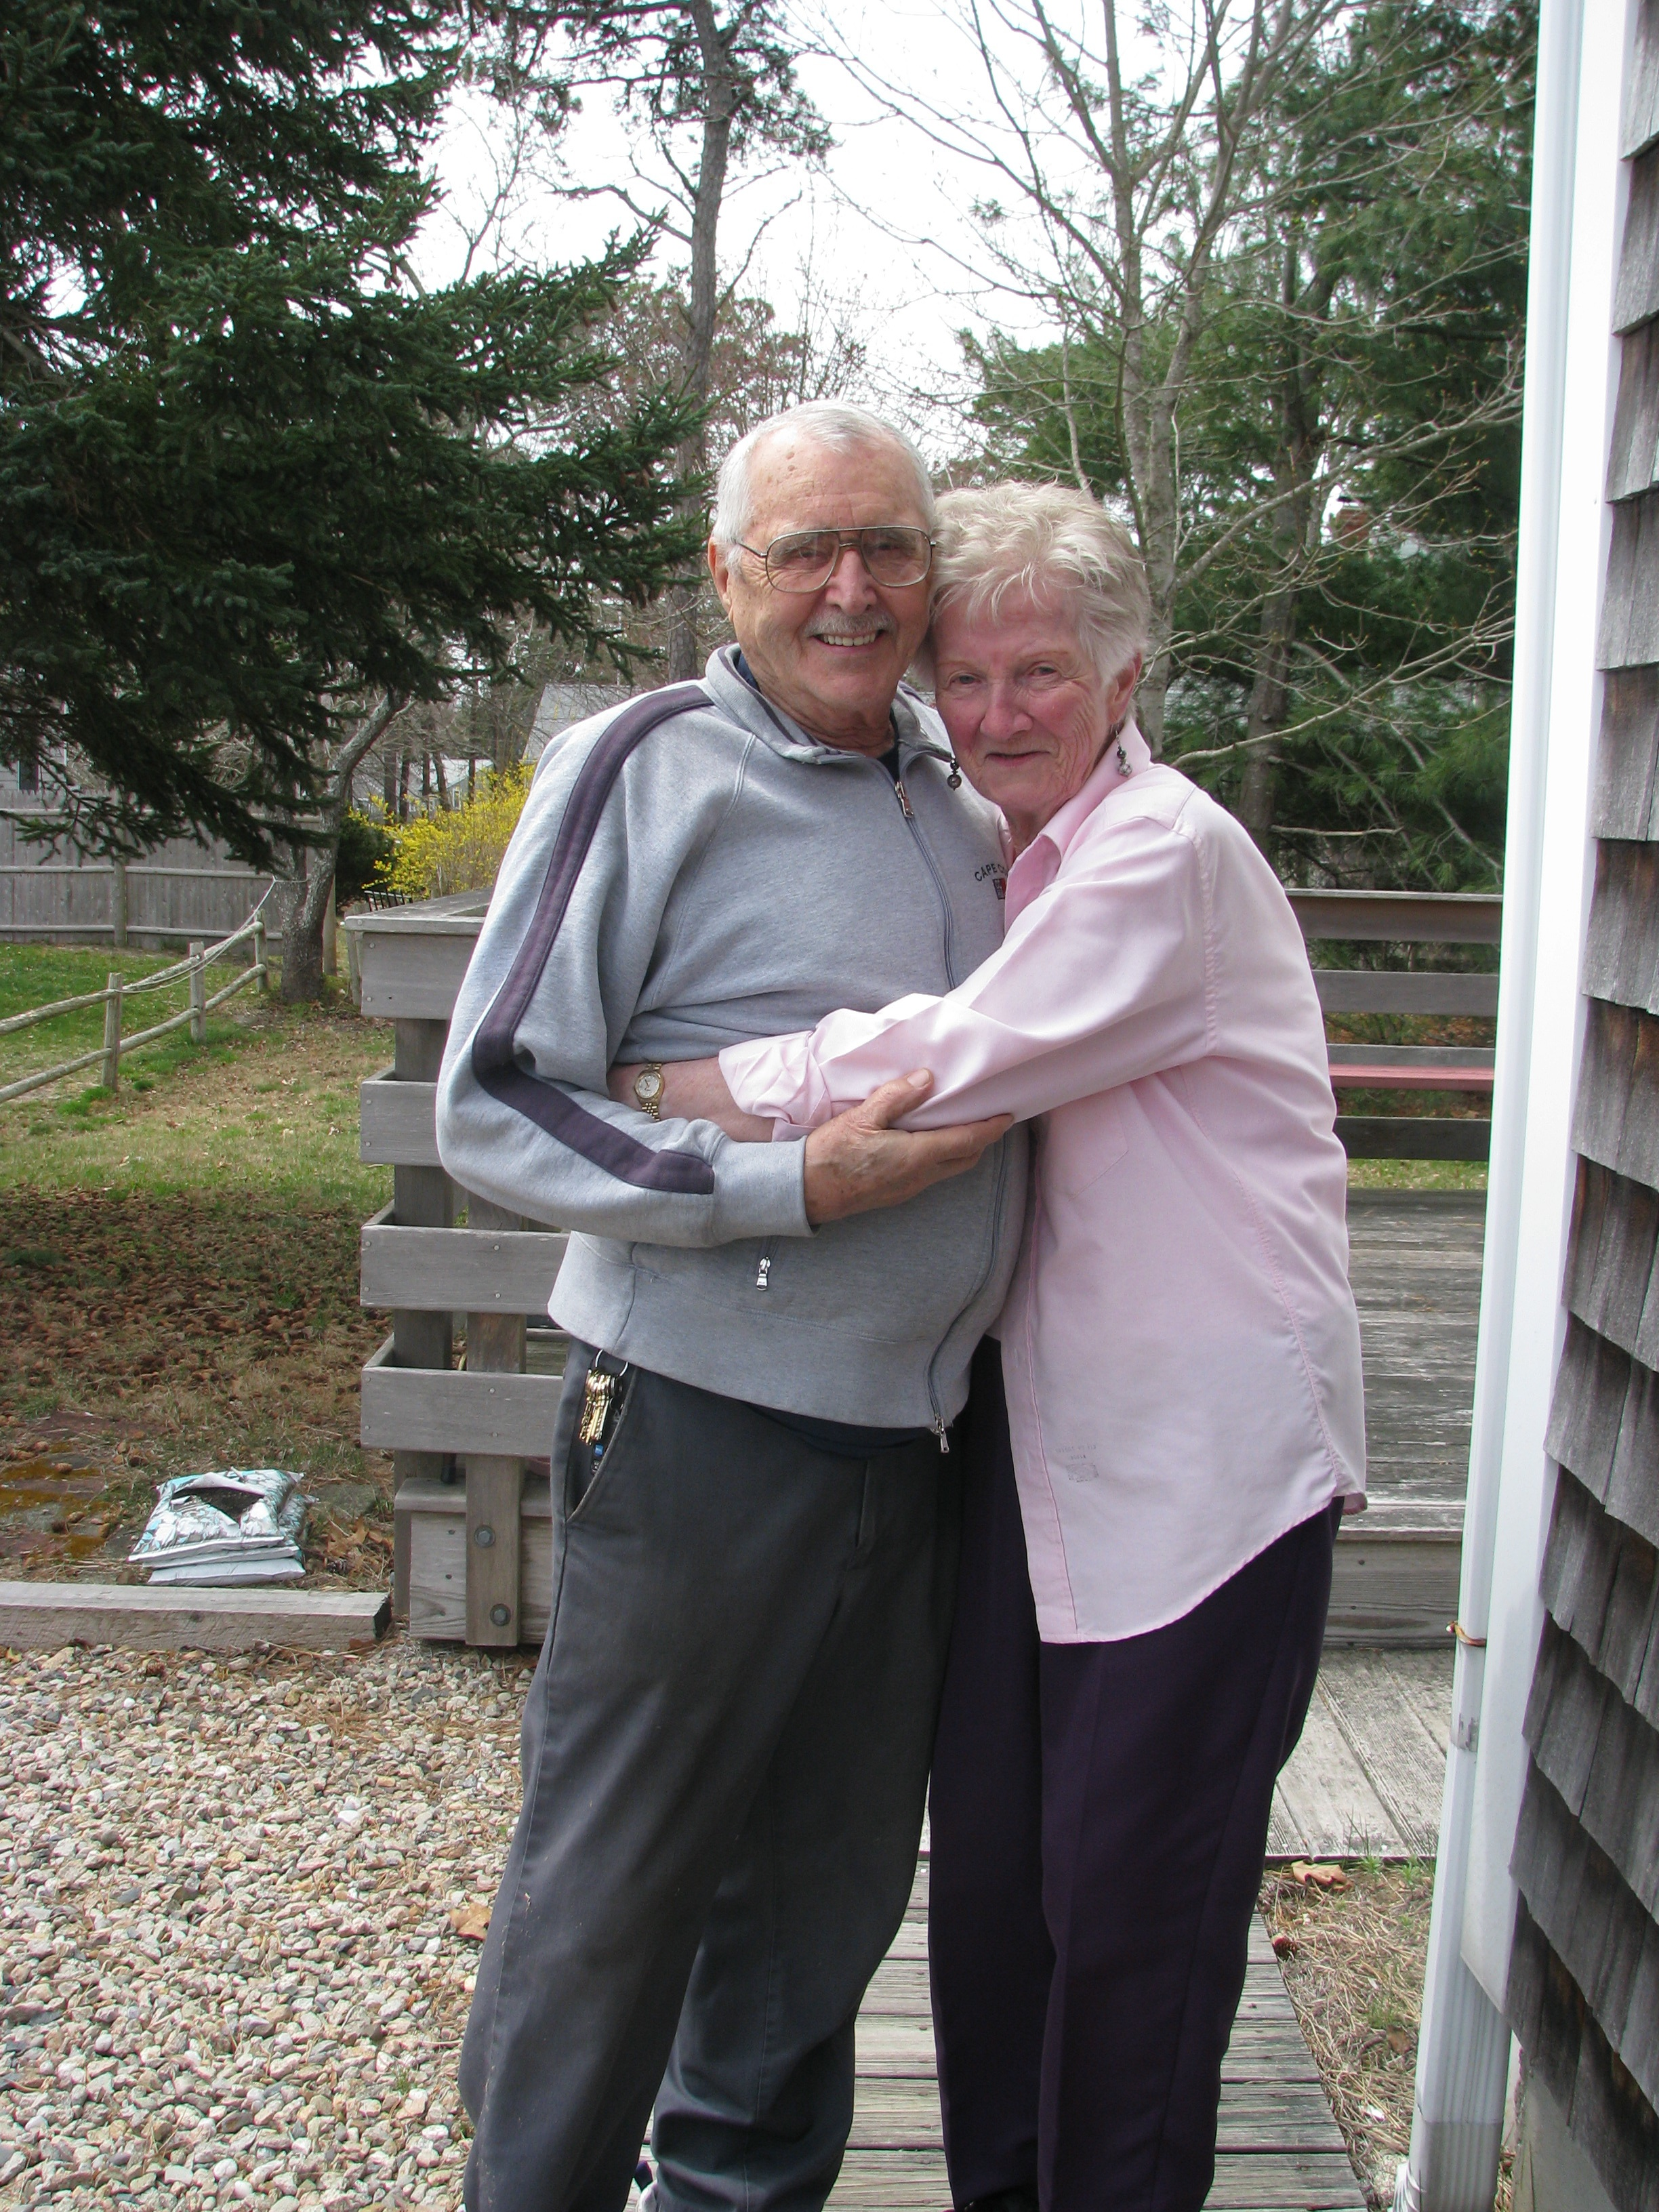 My dad took this photo on Cape Cod where my Gramz and Gordon live.